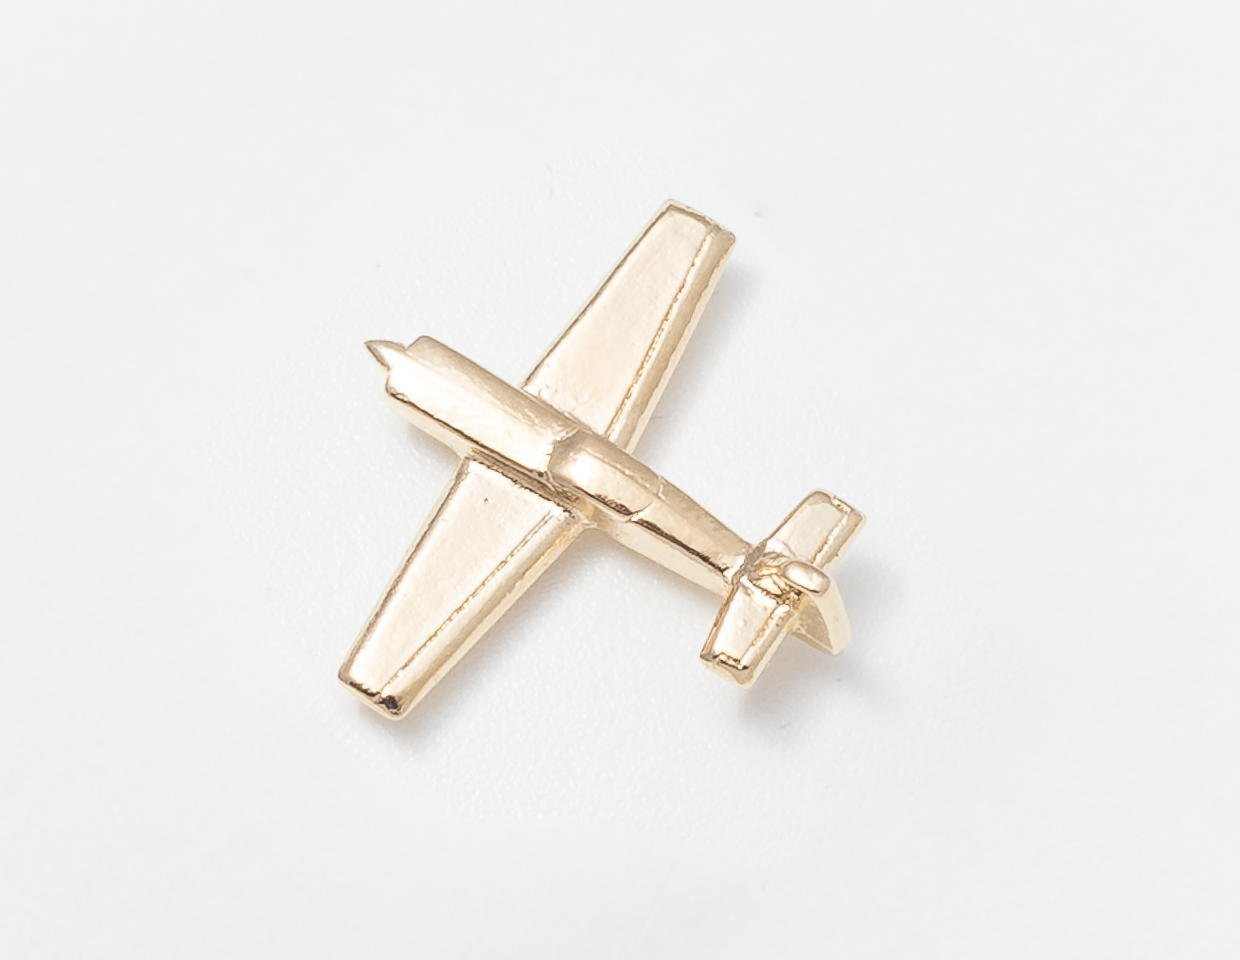 MX2 Gold Plated Tie / Lapel Pin